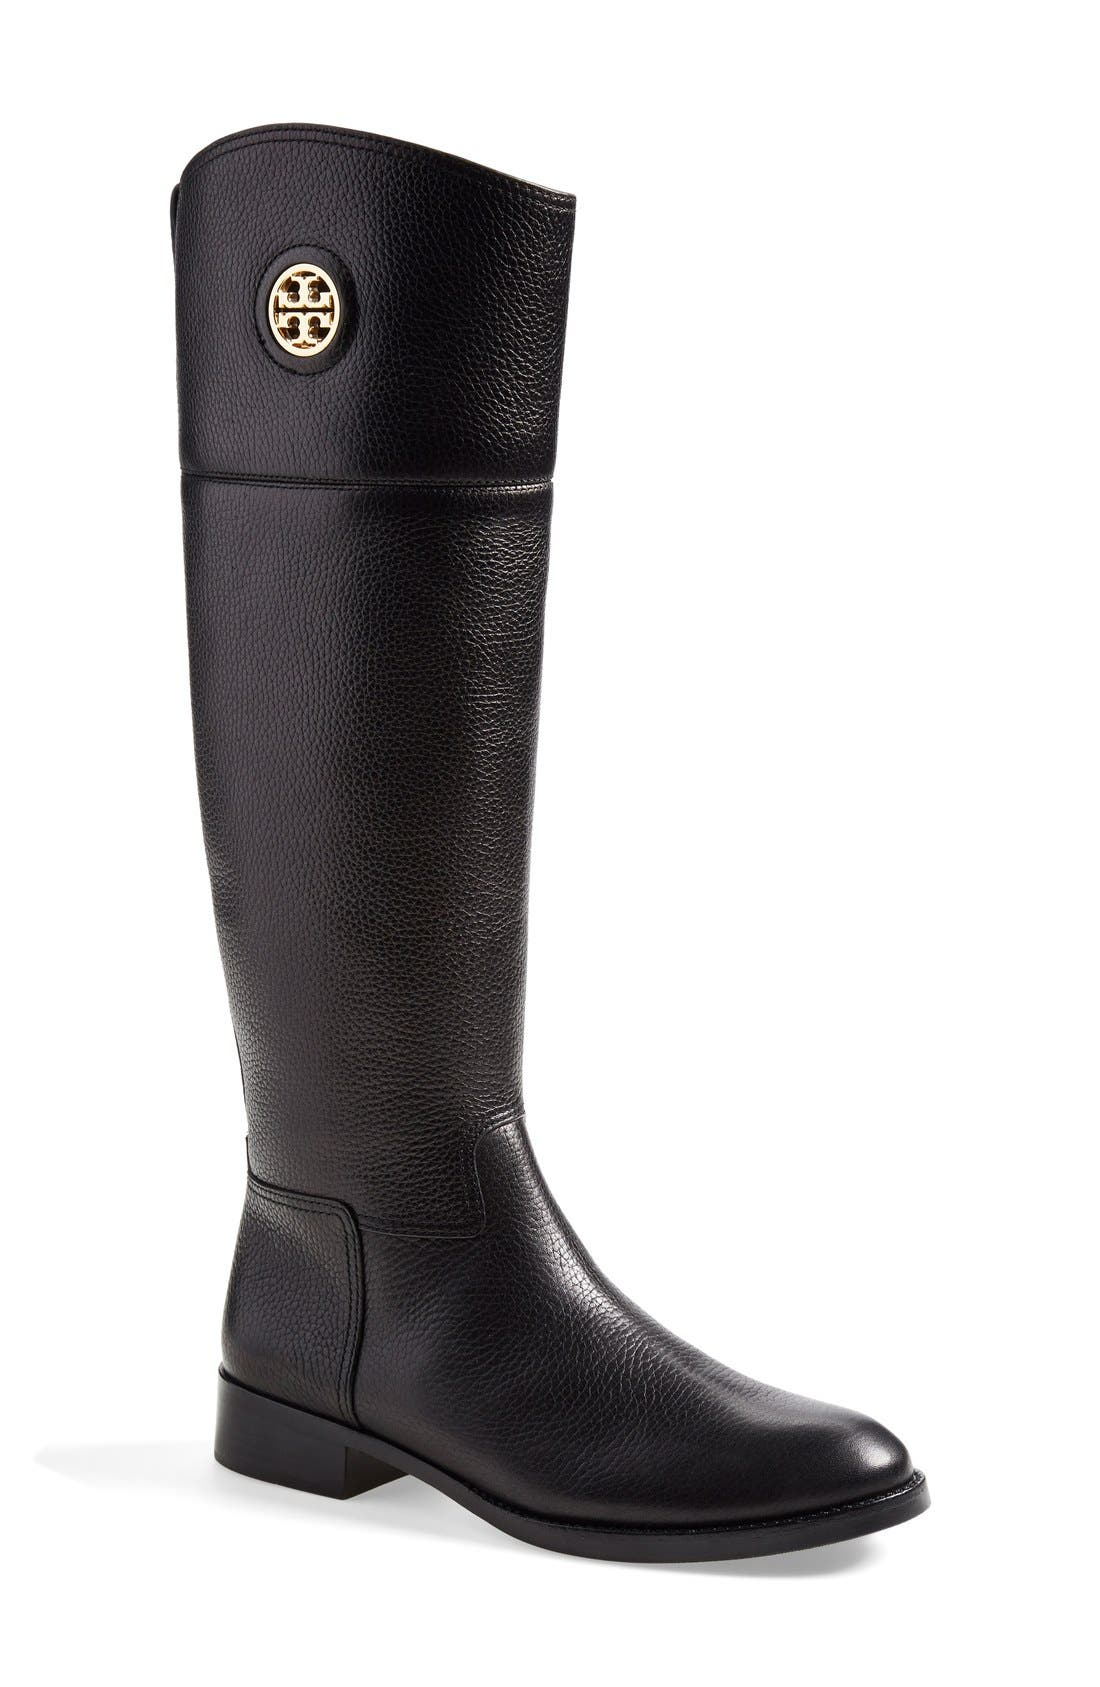 Alternate Image 1 Selected - Tory Burch 'Junction' Riding Boot (Women)